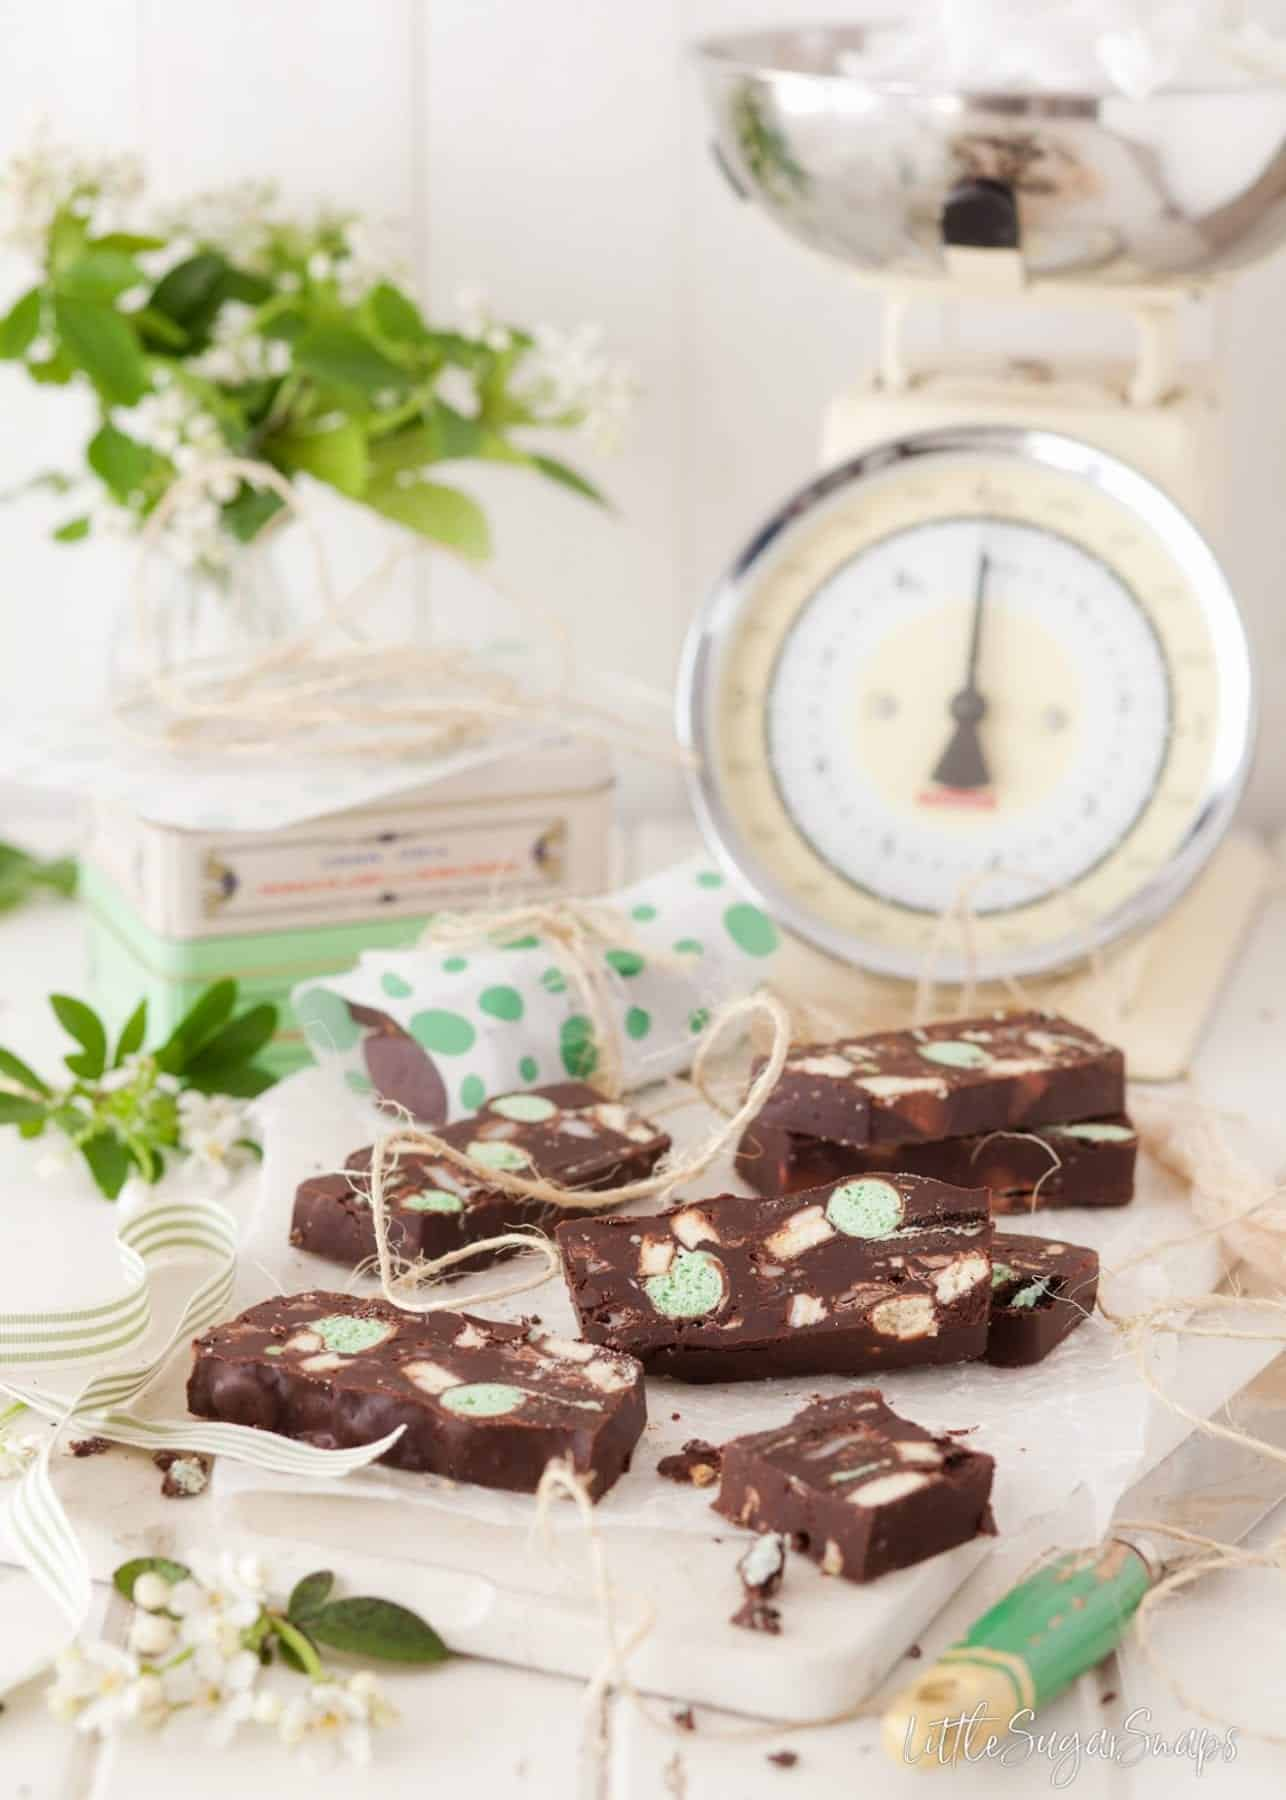 Slices of Mint Chocolate Fridge Cake with old fashioned kitchen scales behind.